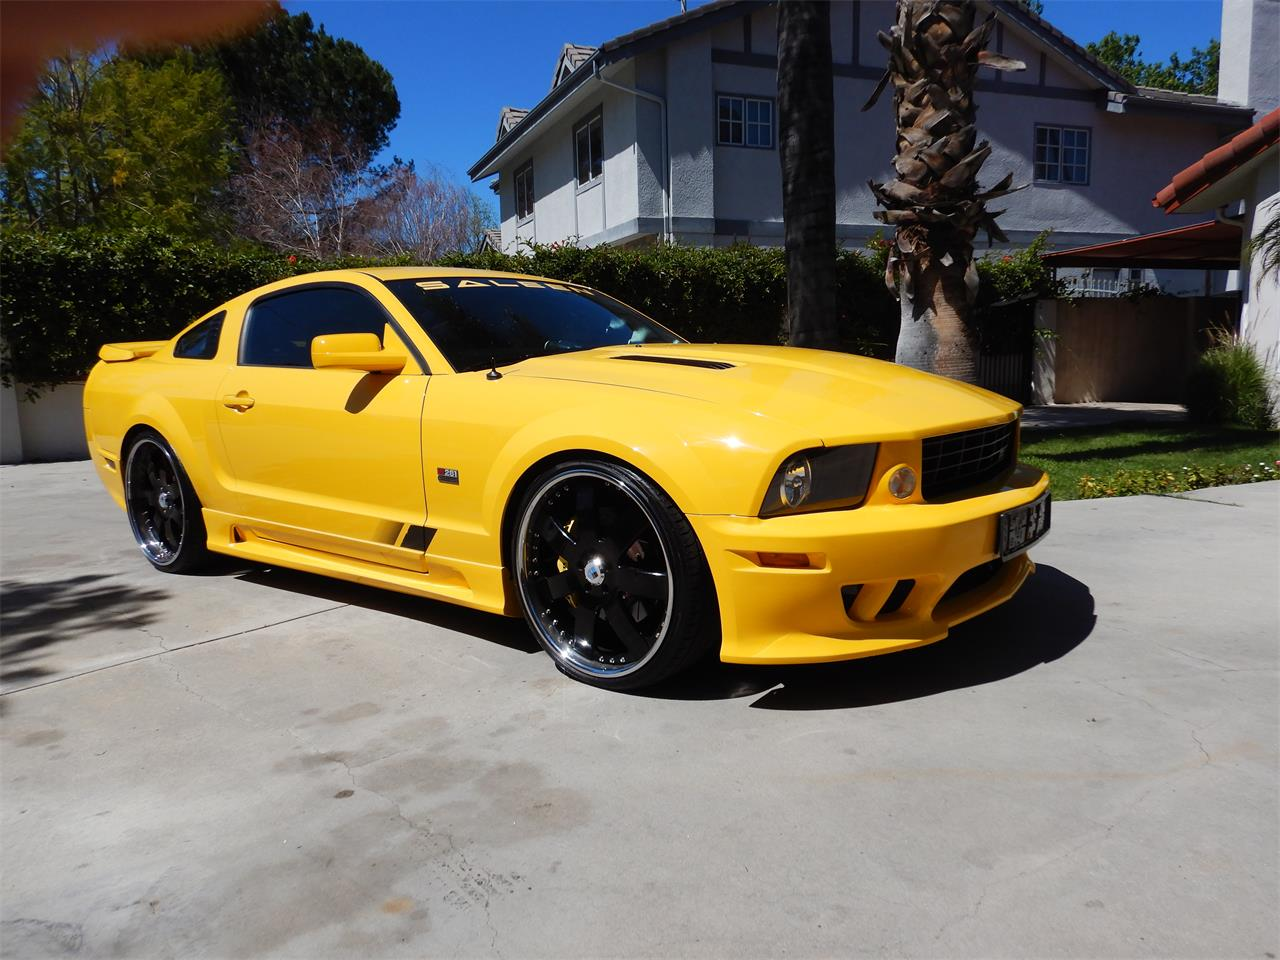 For Sale 2006 Ford Mustang Saleen In Woodlalnd Hills California